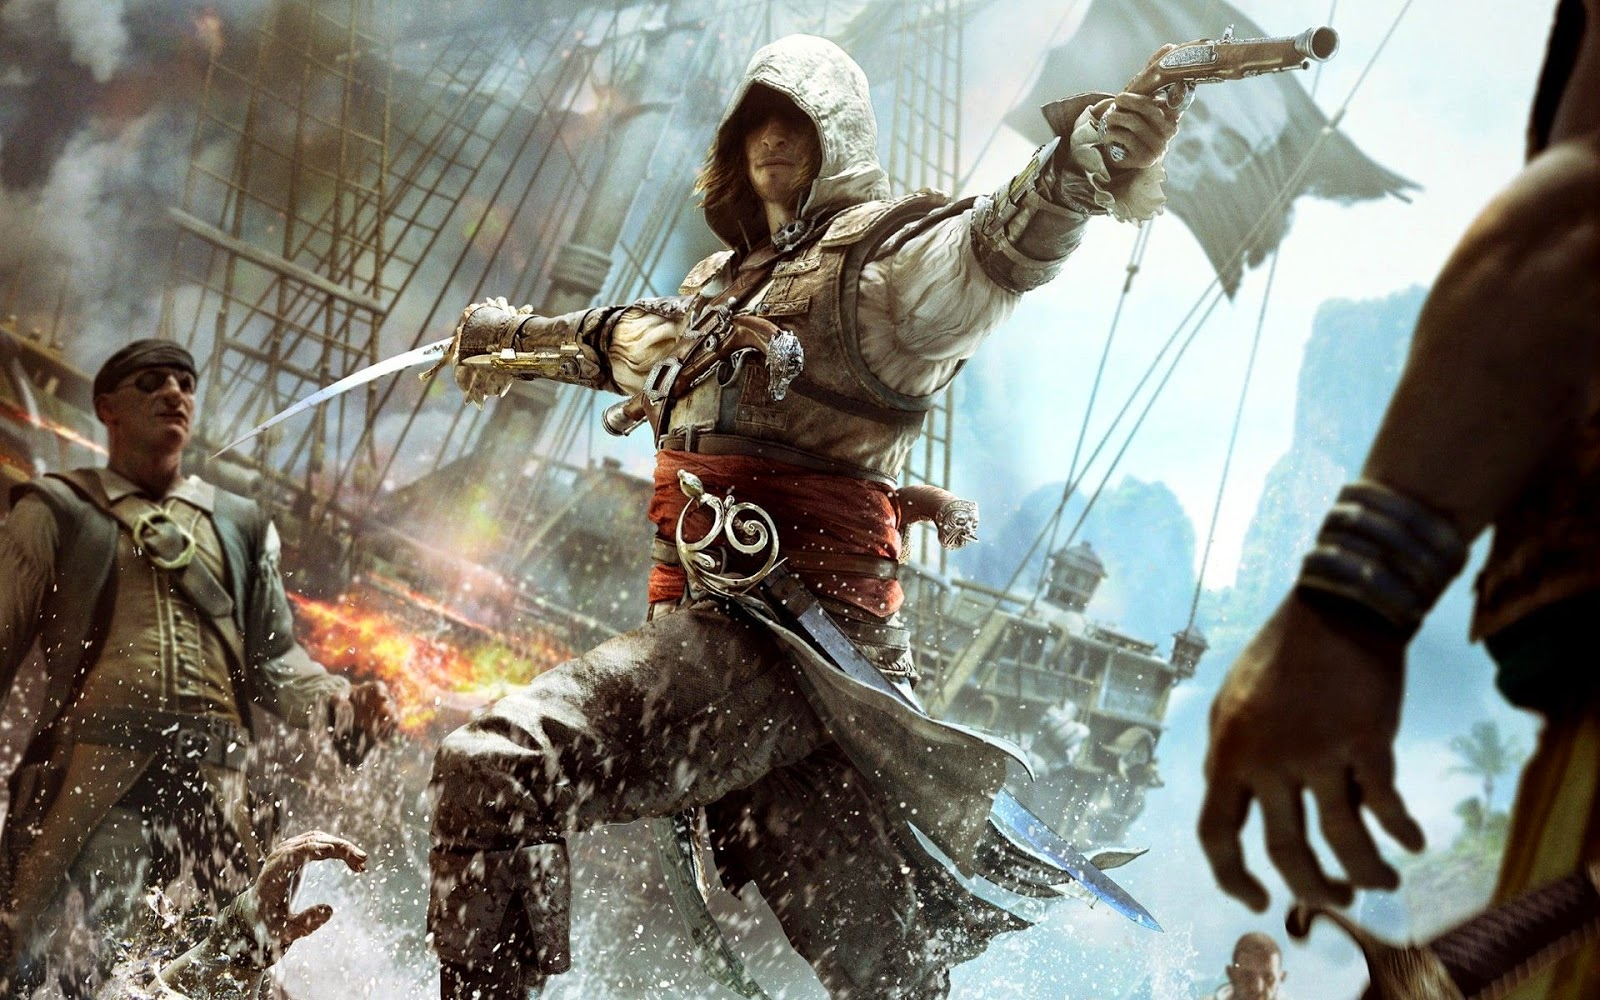 PC GAMING GEEKS: Assassin's Creed 4: Black Flag